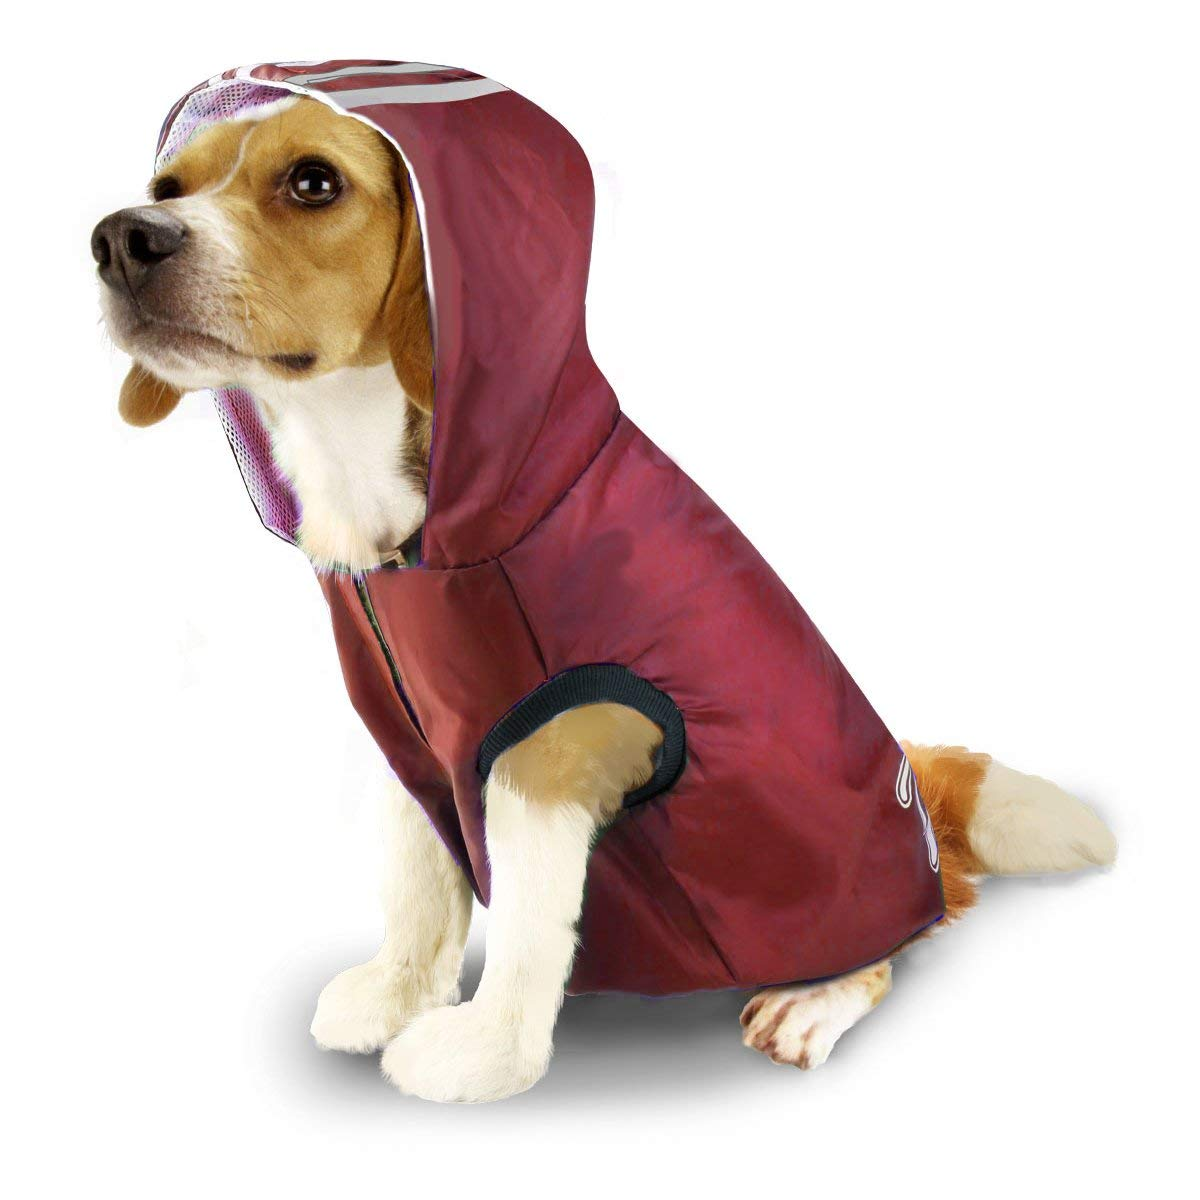 Antart Dog Raincoat Waterproof Pet Jacket Hoodies Dogs Outdoor Clothes Lightweight